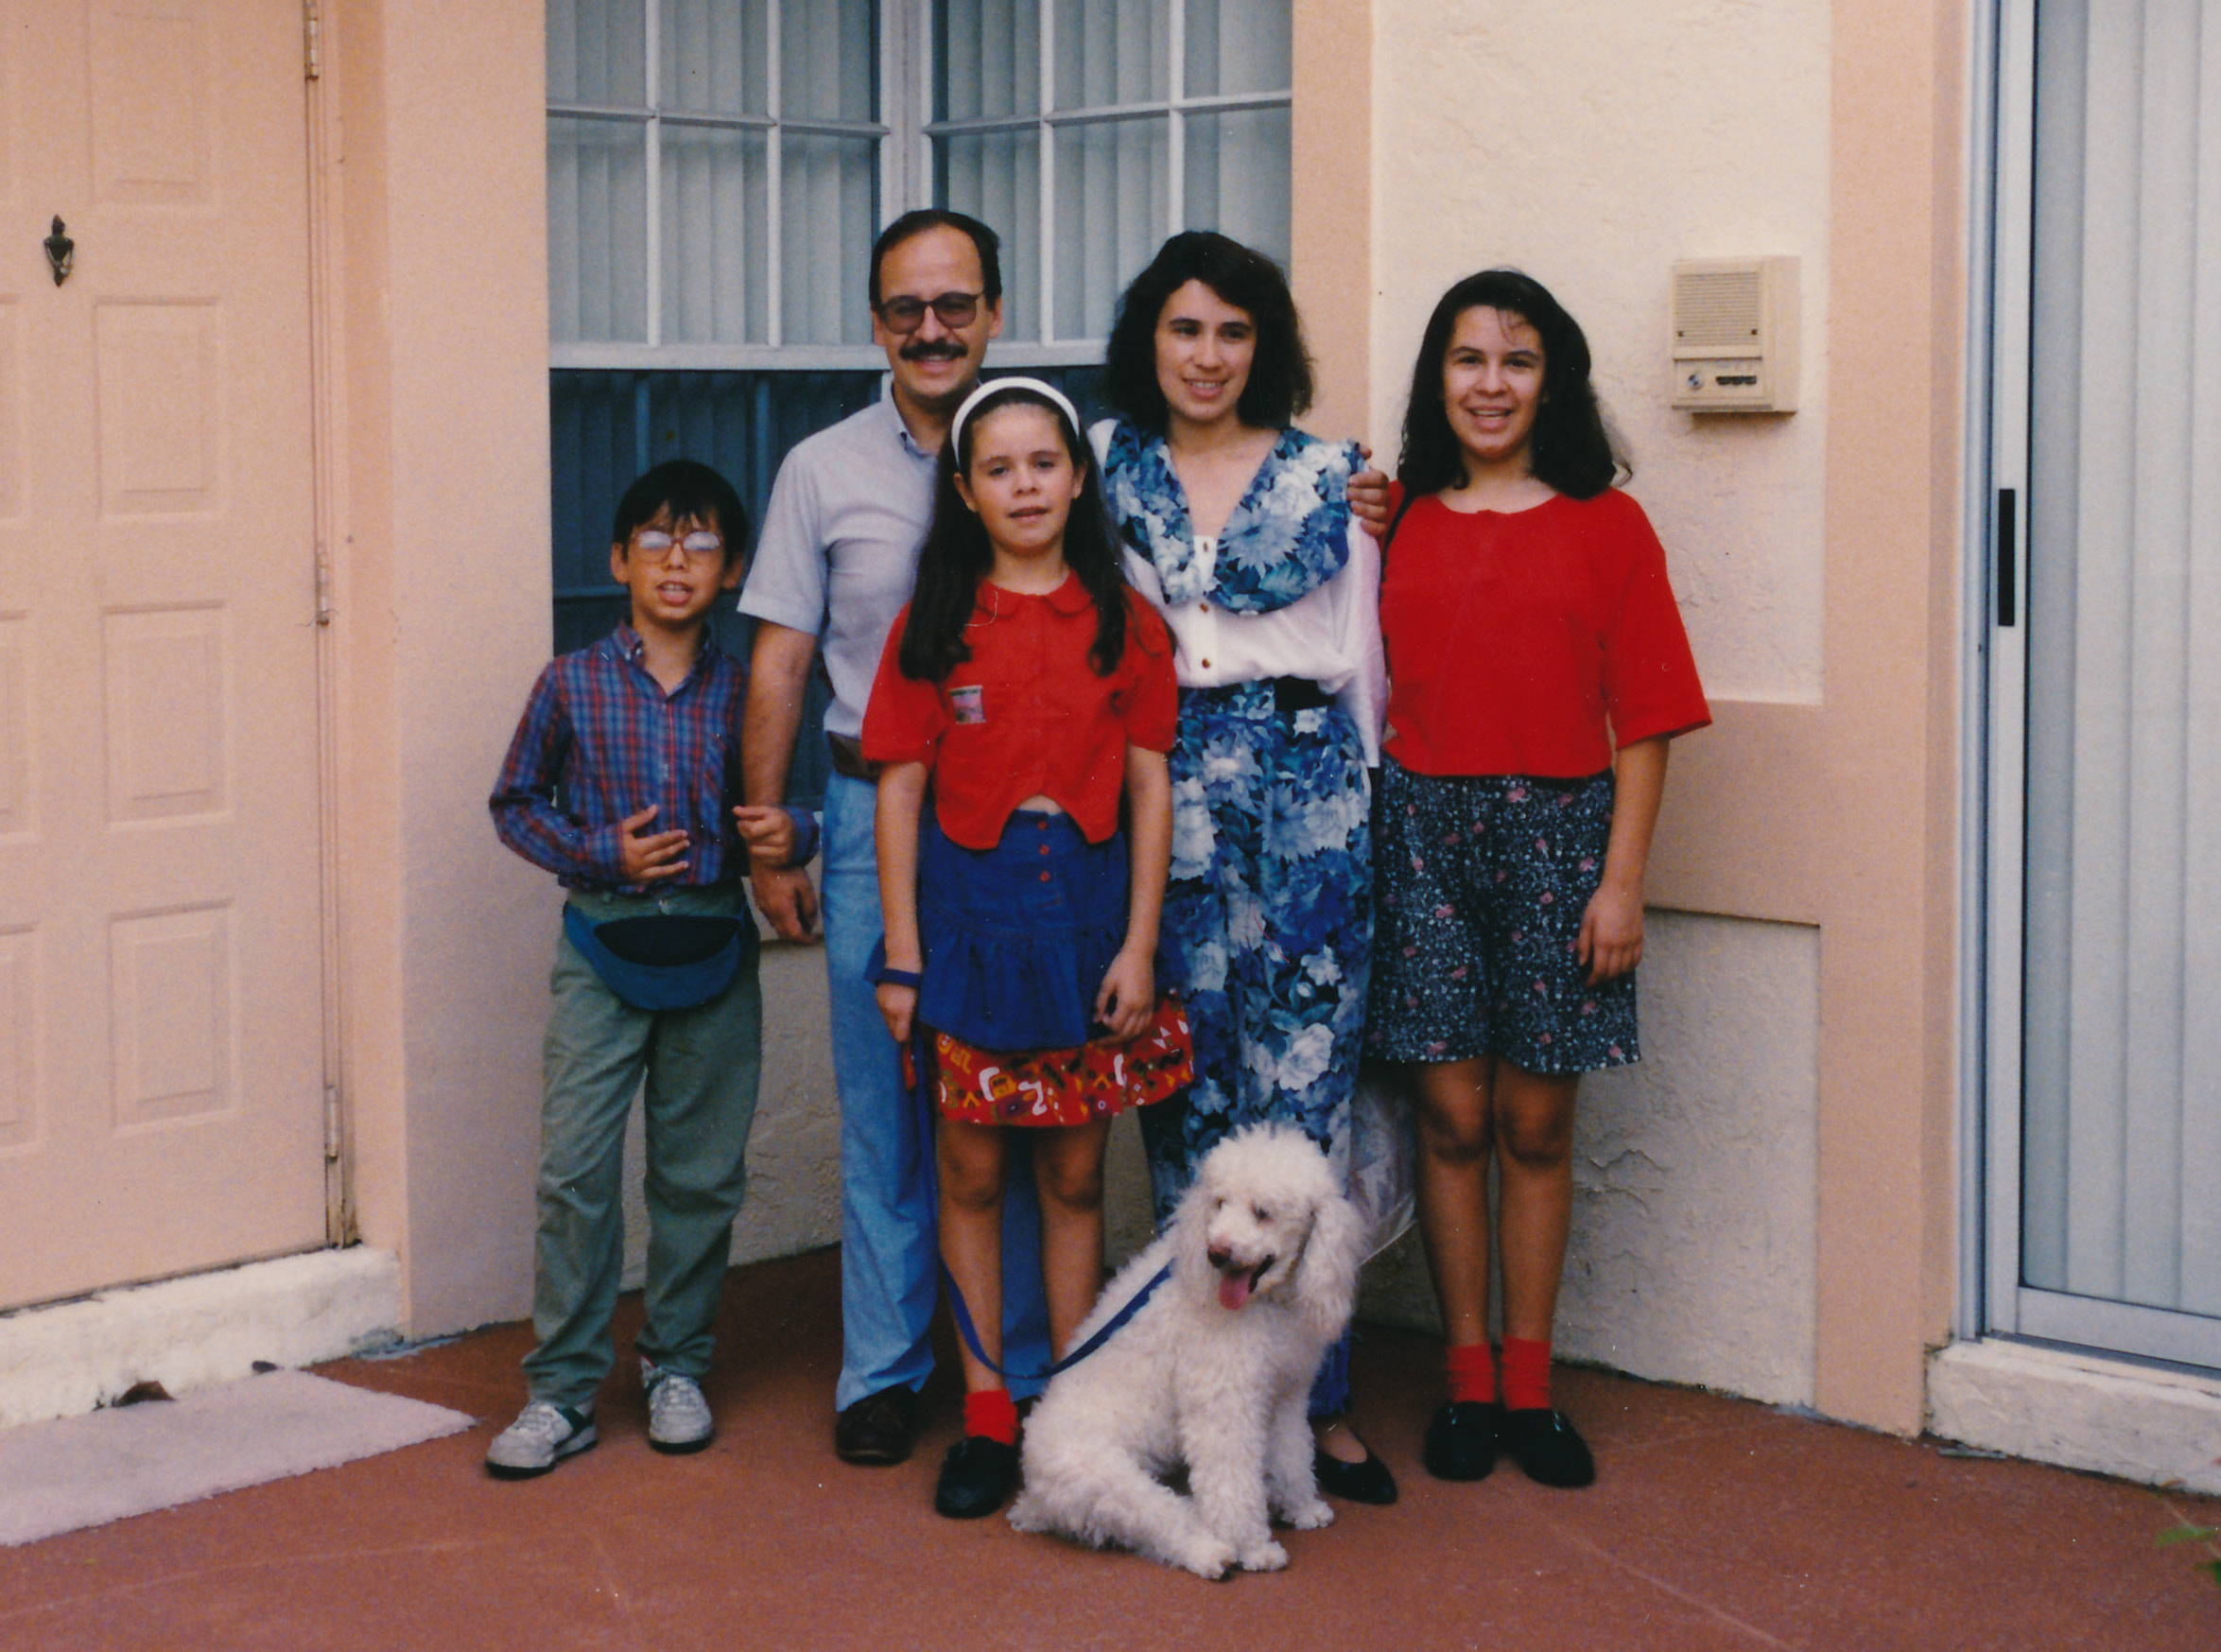 A photo of Ana as a young girl with her two siblings, parents, and a white, fluffy dog. They are all wearing various shades of red, white, and blue, contrasting the pick walls of their home.